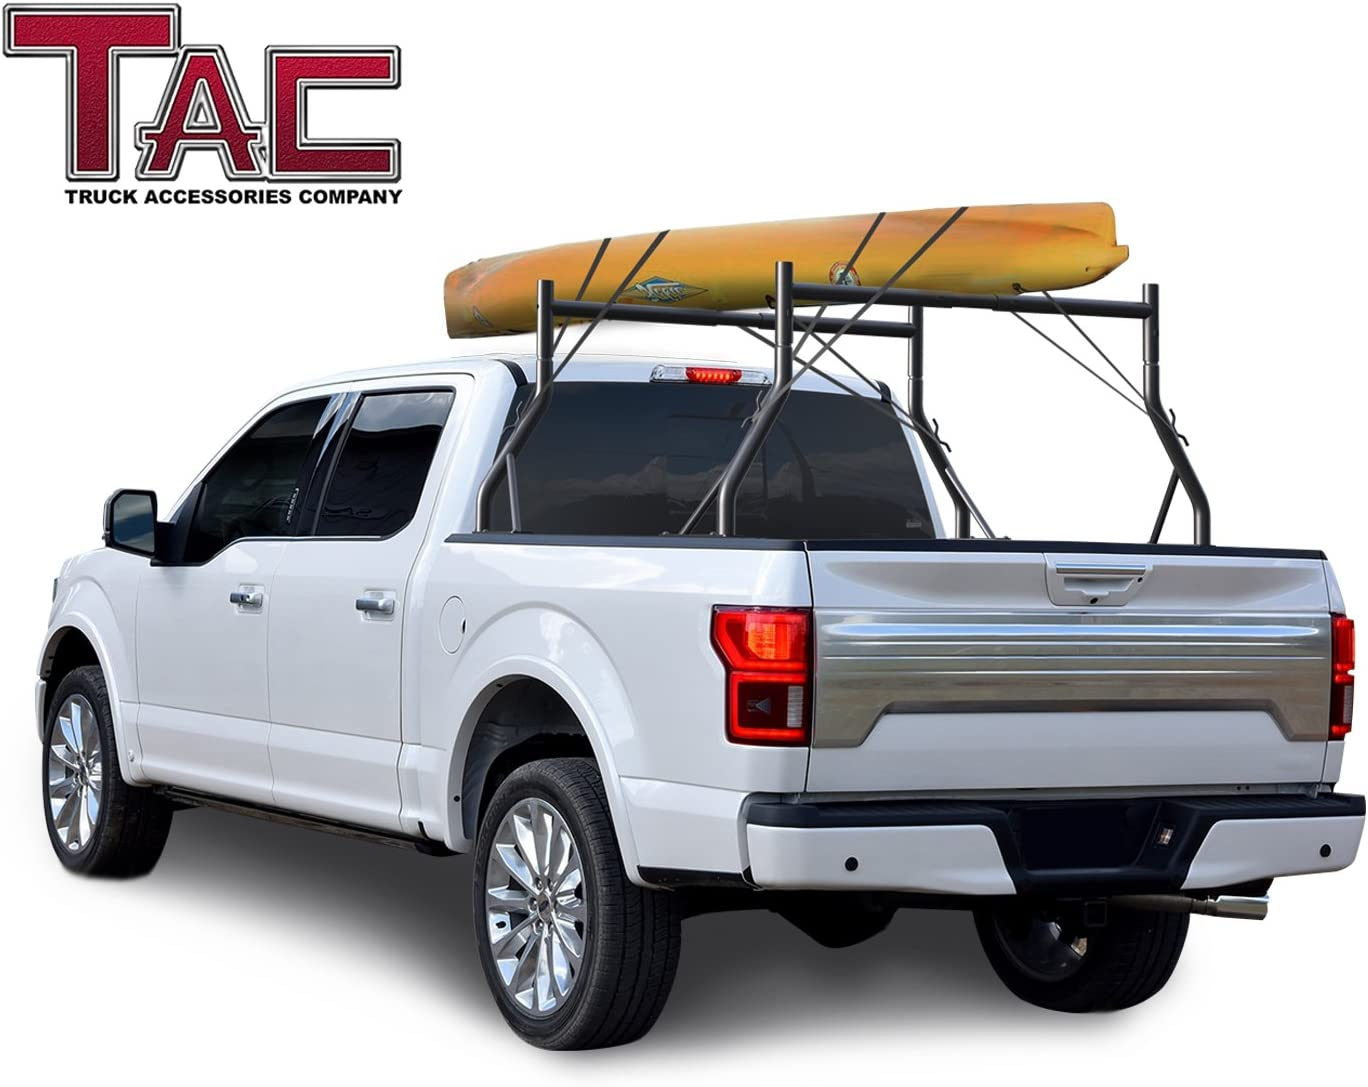 TAC Adjustable Truck Bed Ladder Rack 2 Bars Pick up Rack 500 LBS Capacity Utility Contractor Universal Compatible with Kayak Canoe Boat Ladder Pipes Lumber Cargo Carrier Accessories